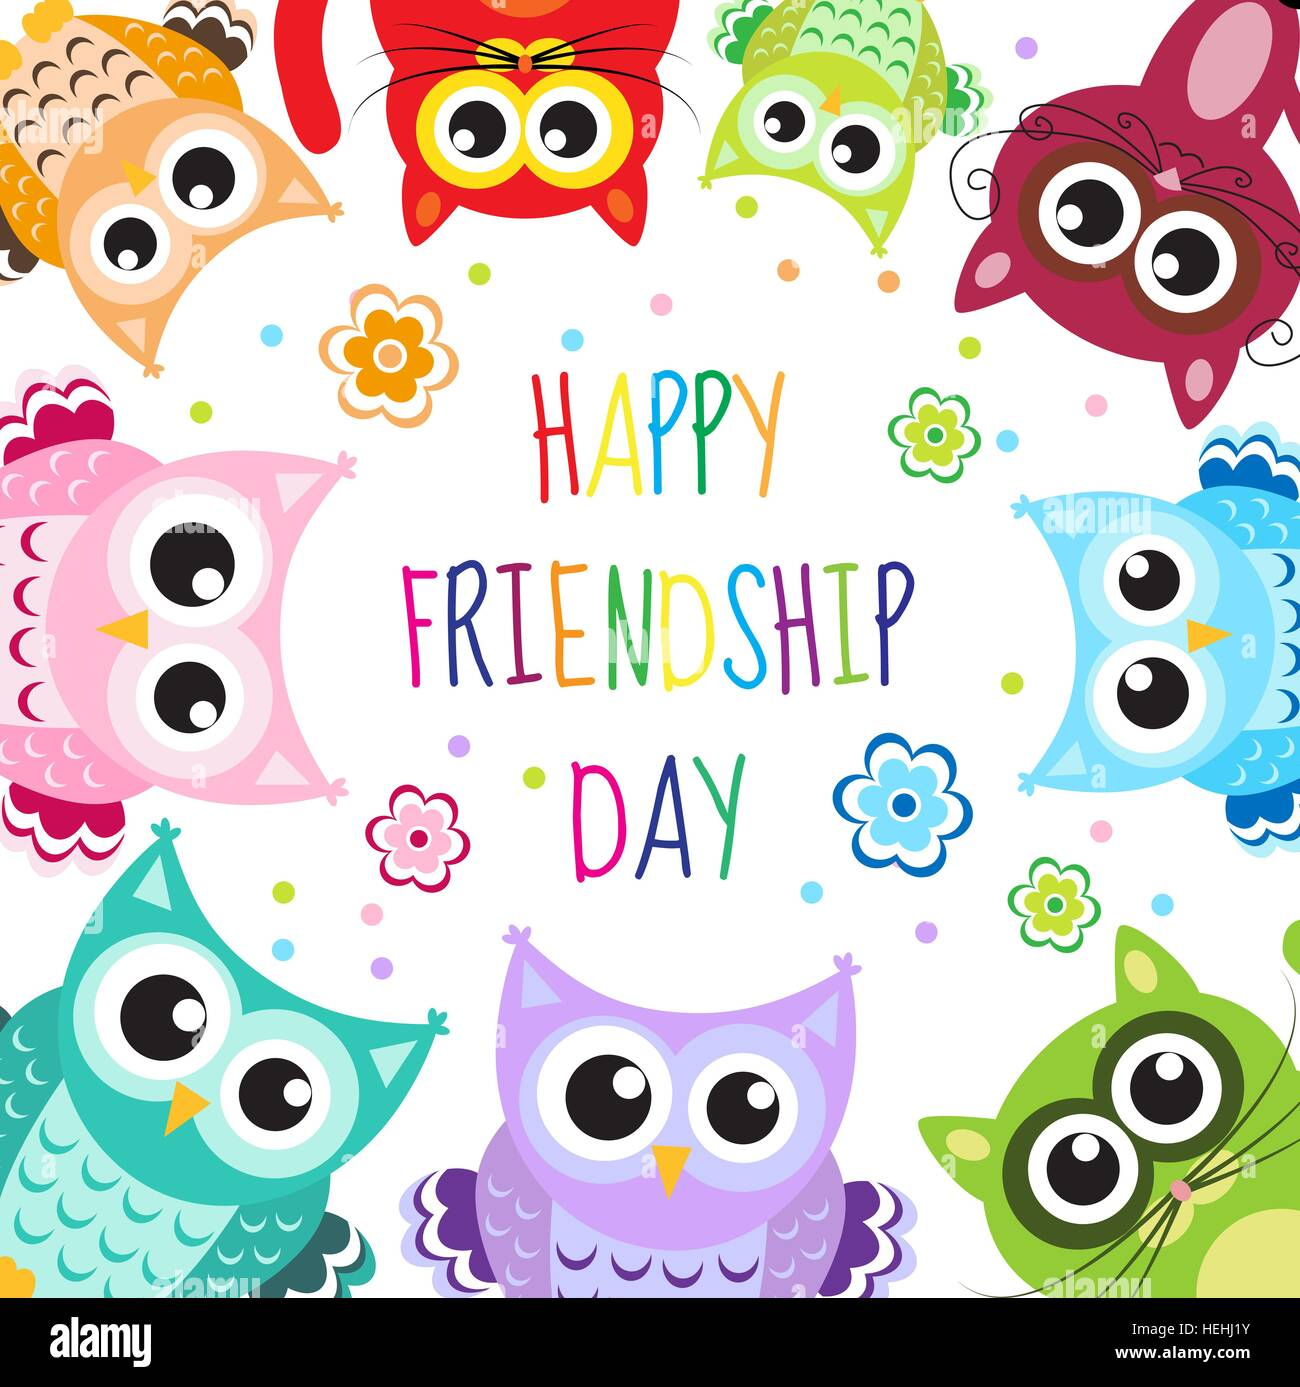 greeting card with a happy friendship day greeting cute cartoon